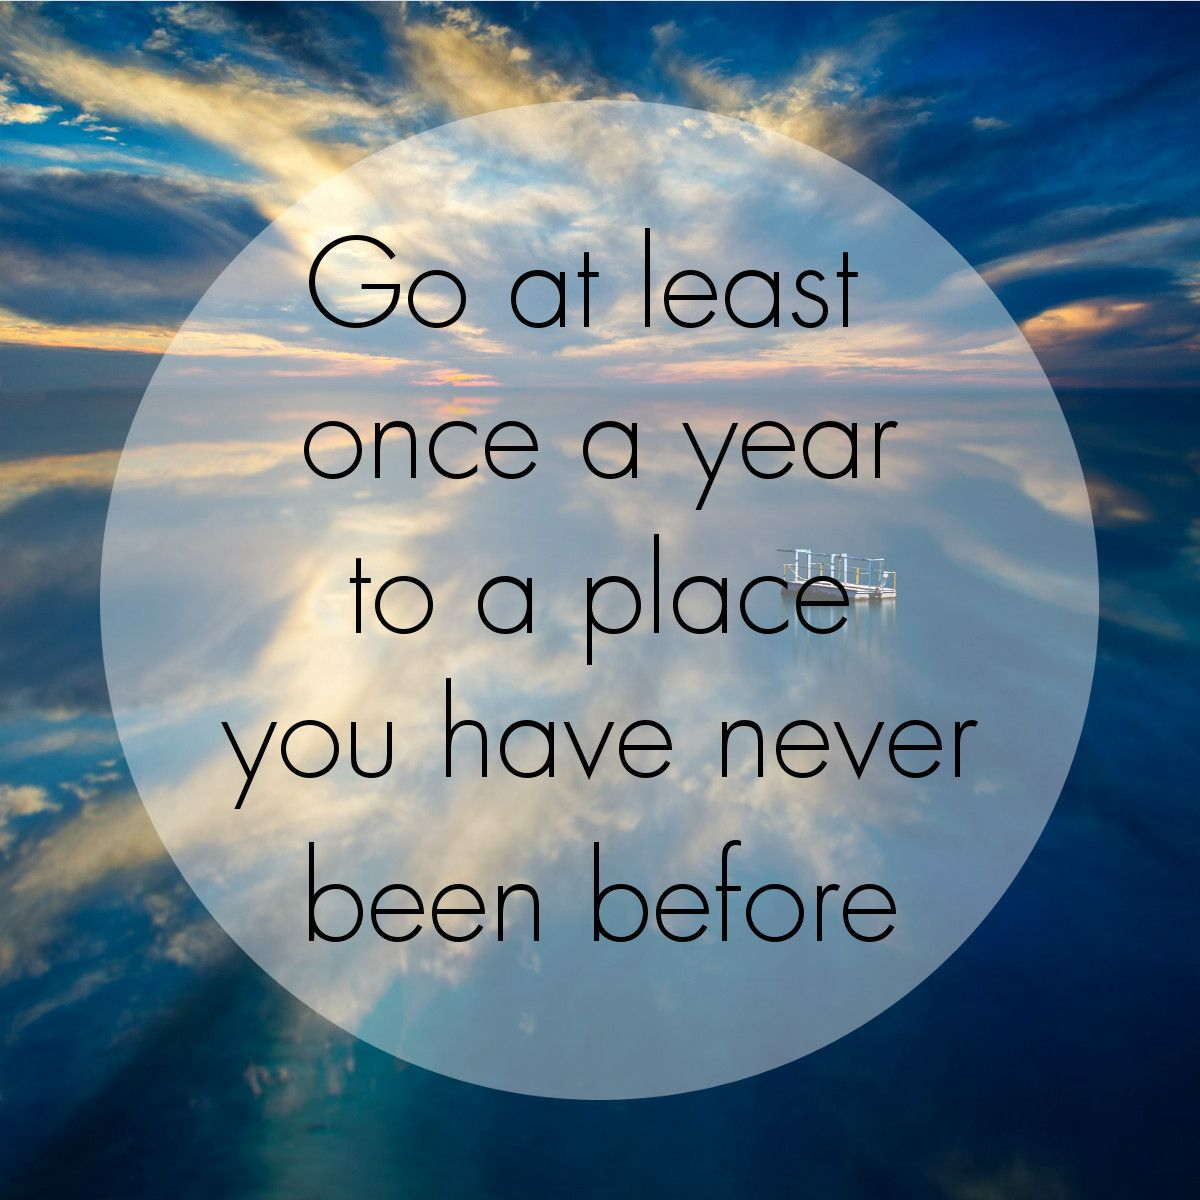 Go at least once a year to a place you have never been before! #justawaycom #reisen #urlaub #travel #explore #world #fun #adventure